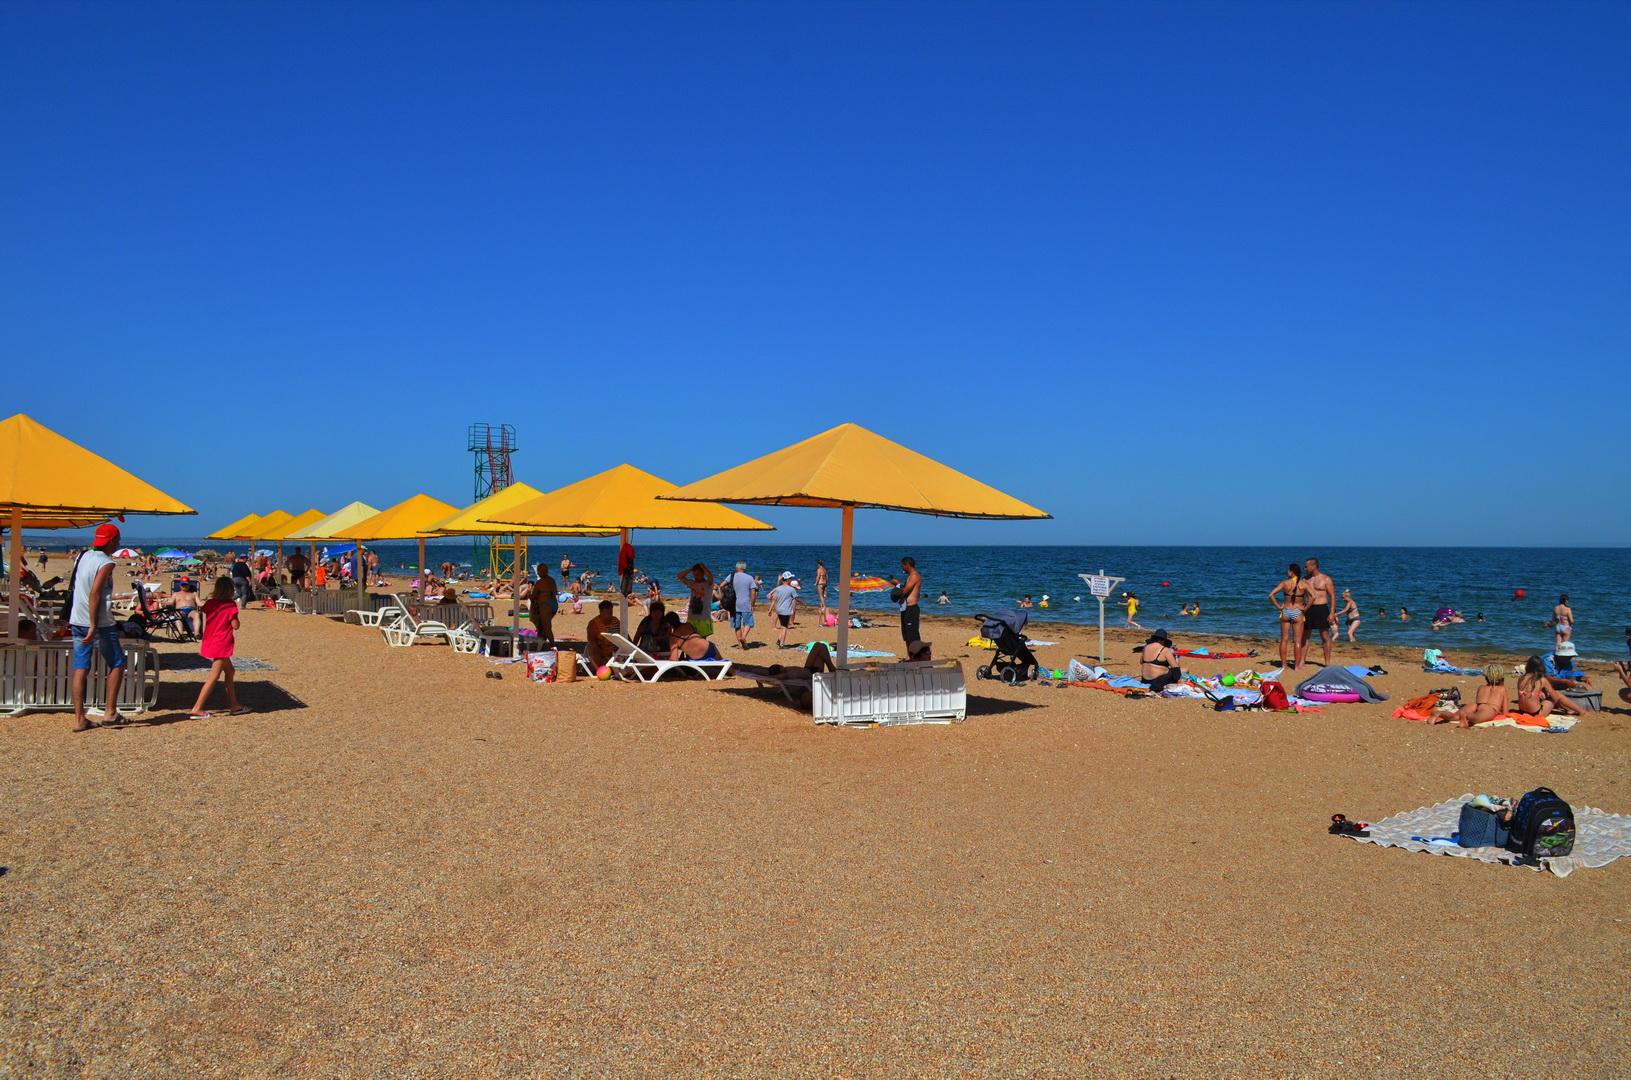 kerch beach 29 06 2020 1